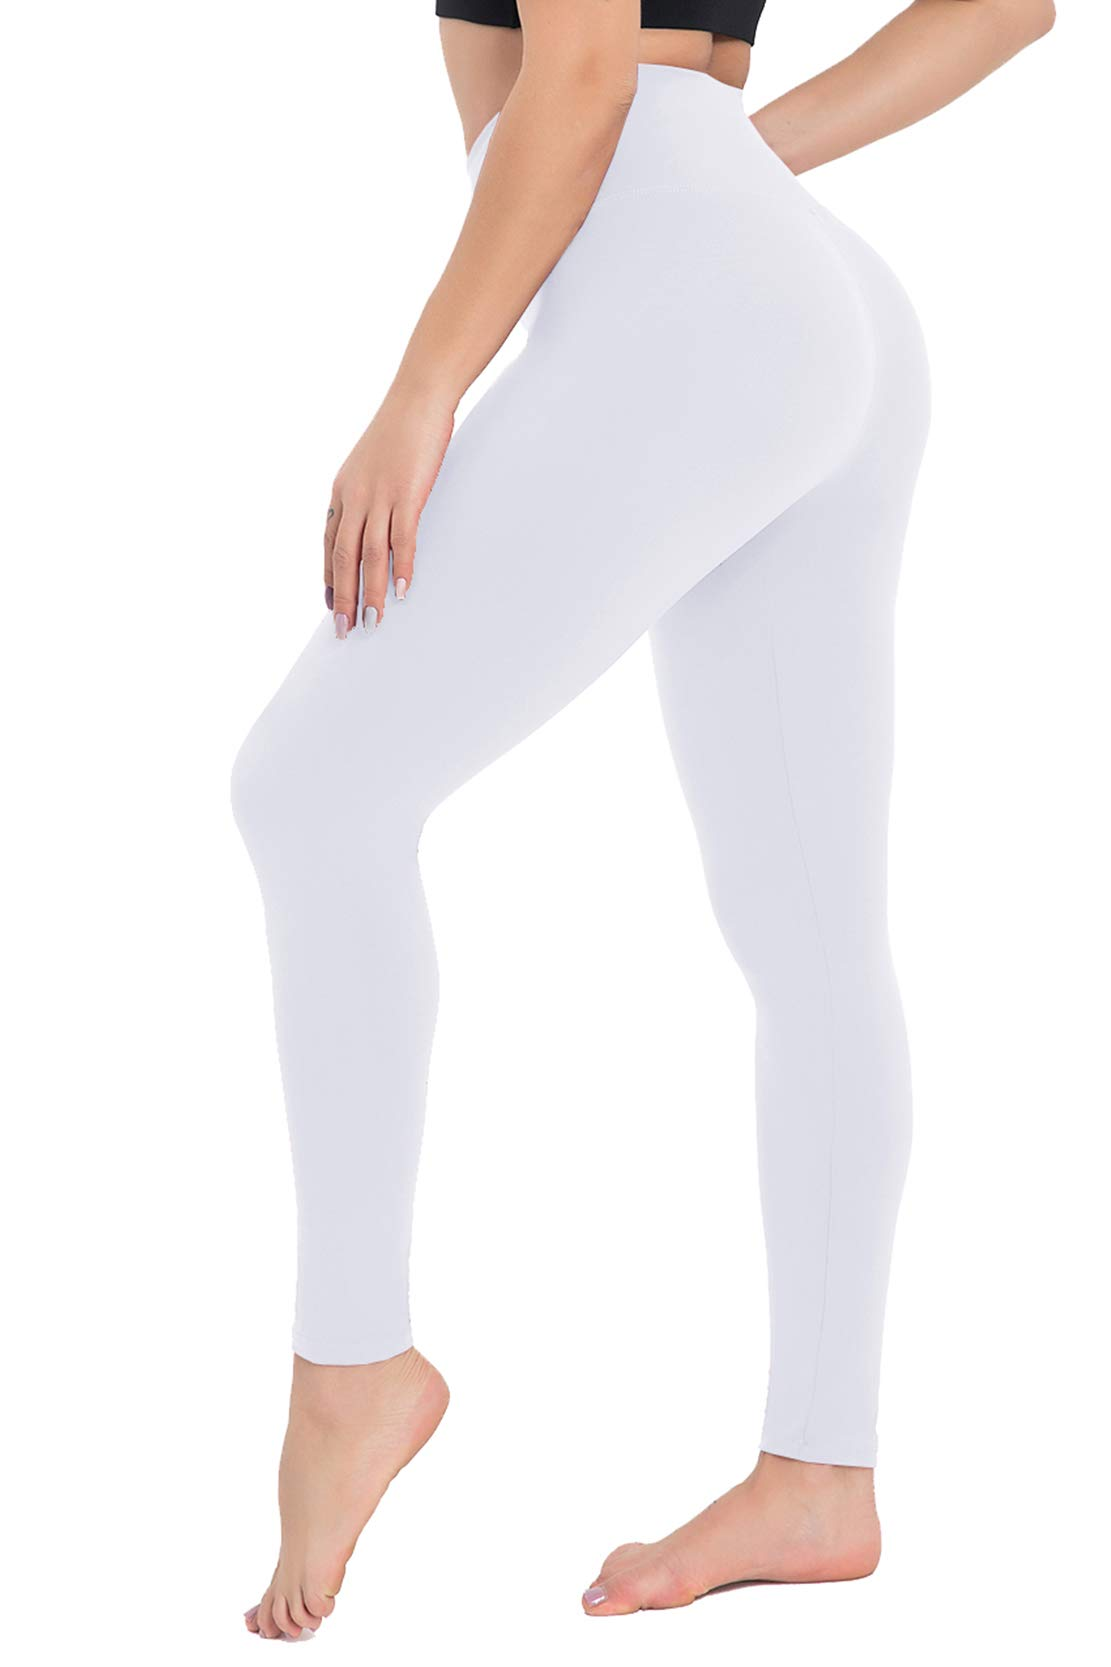 CAMPSNAIL Women High Waisted Leggings - Soft Tummy Control Slimming Yoga Pants for Workout Athletic Running Reg & Plus Size